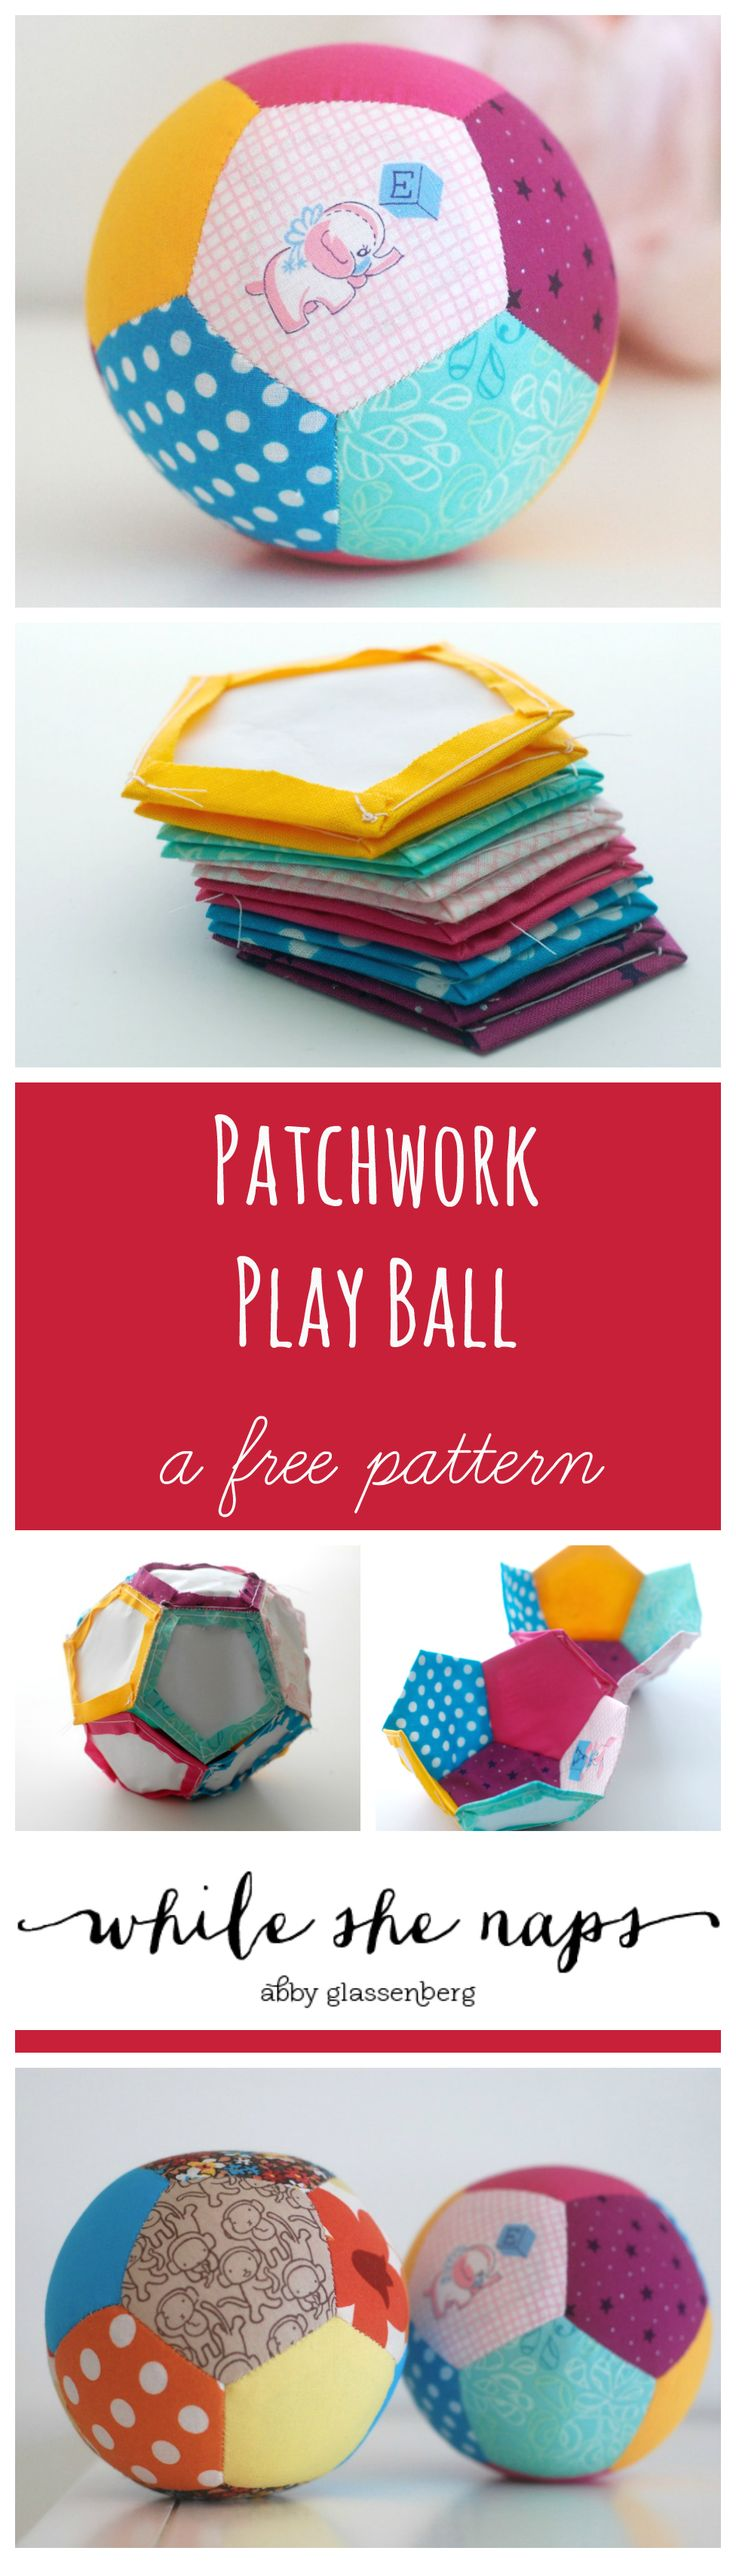 Patchwork Ball Collage                                                                                                                                                                                 More